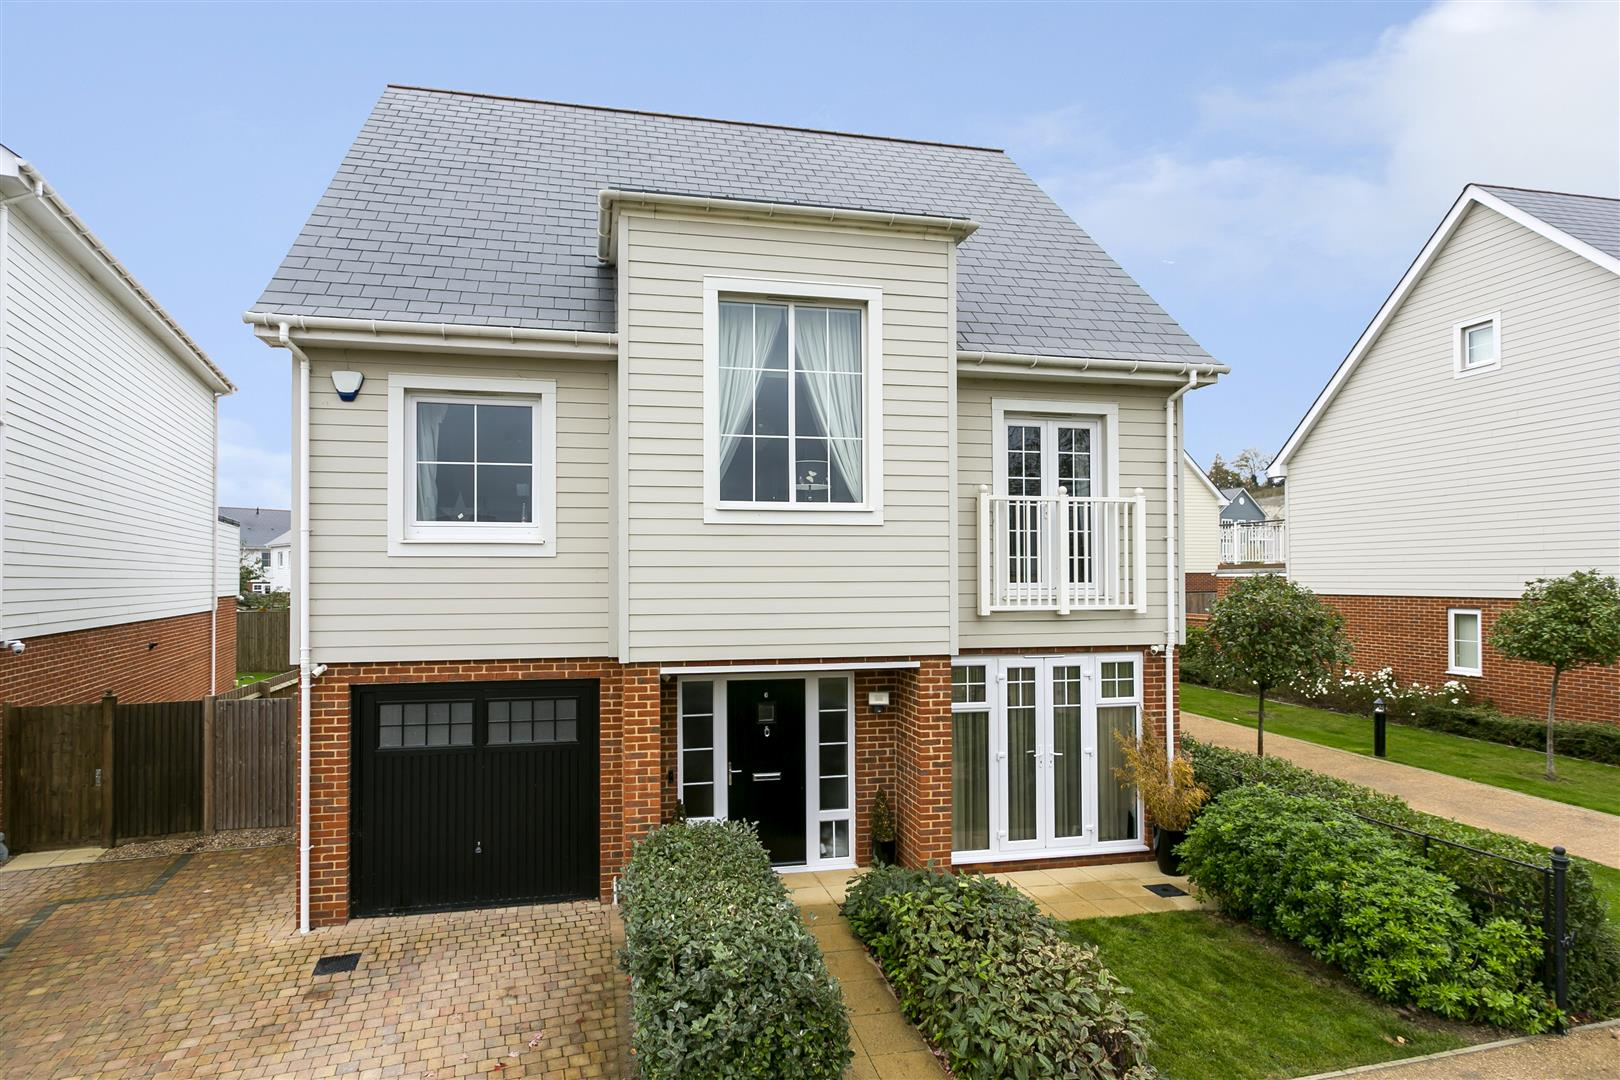 5 Bedrooms Detached House for sale in Whitby Close, Snodland